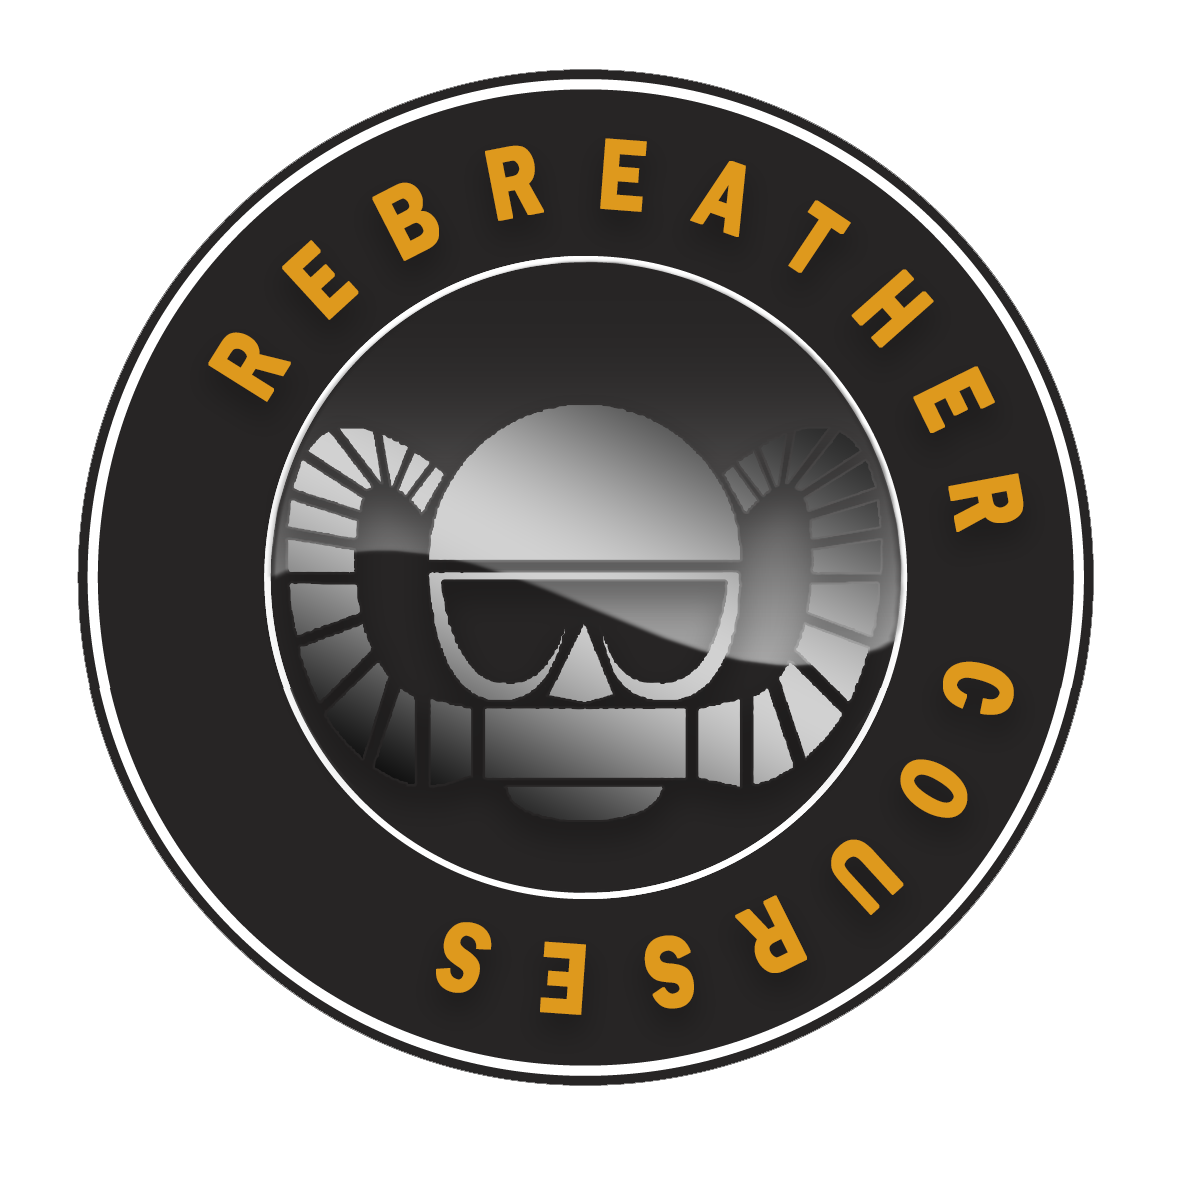 rebreather-courses-logo.png